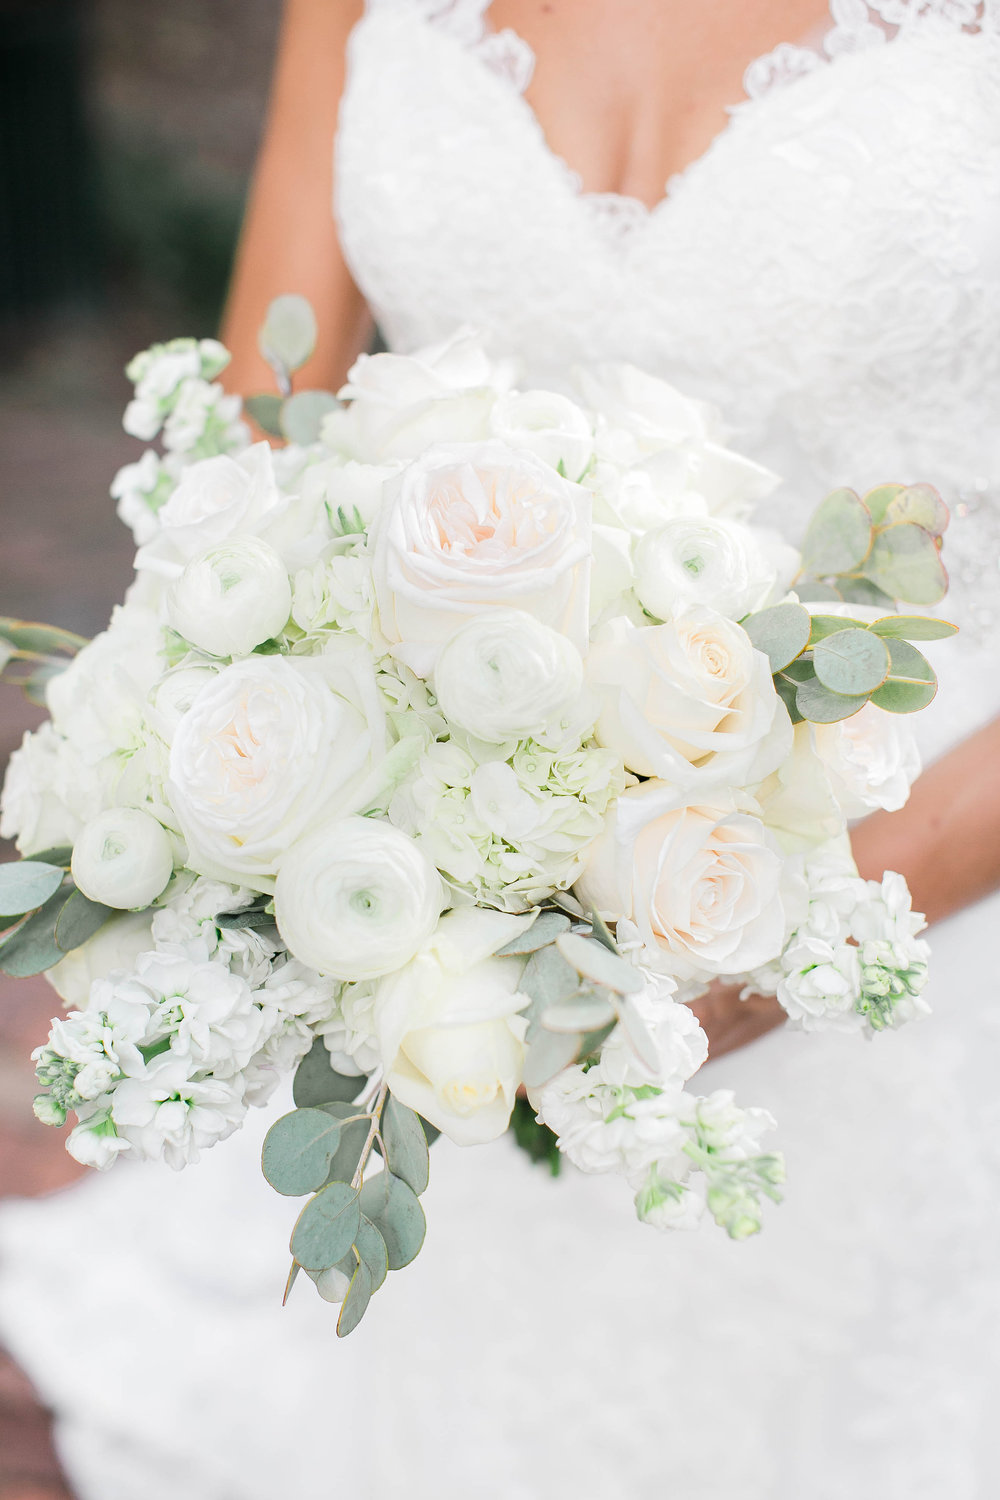 All-white bouquet at Savannah, Georgia wedding by JB Marie Photography